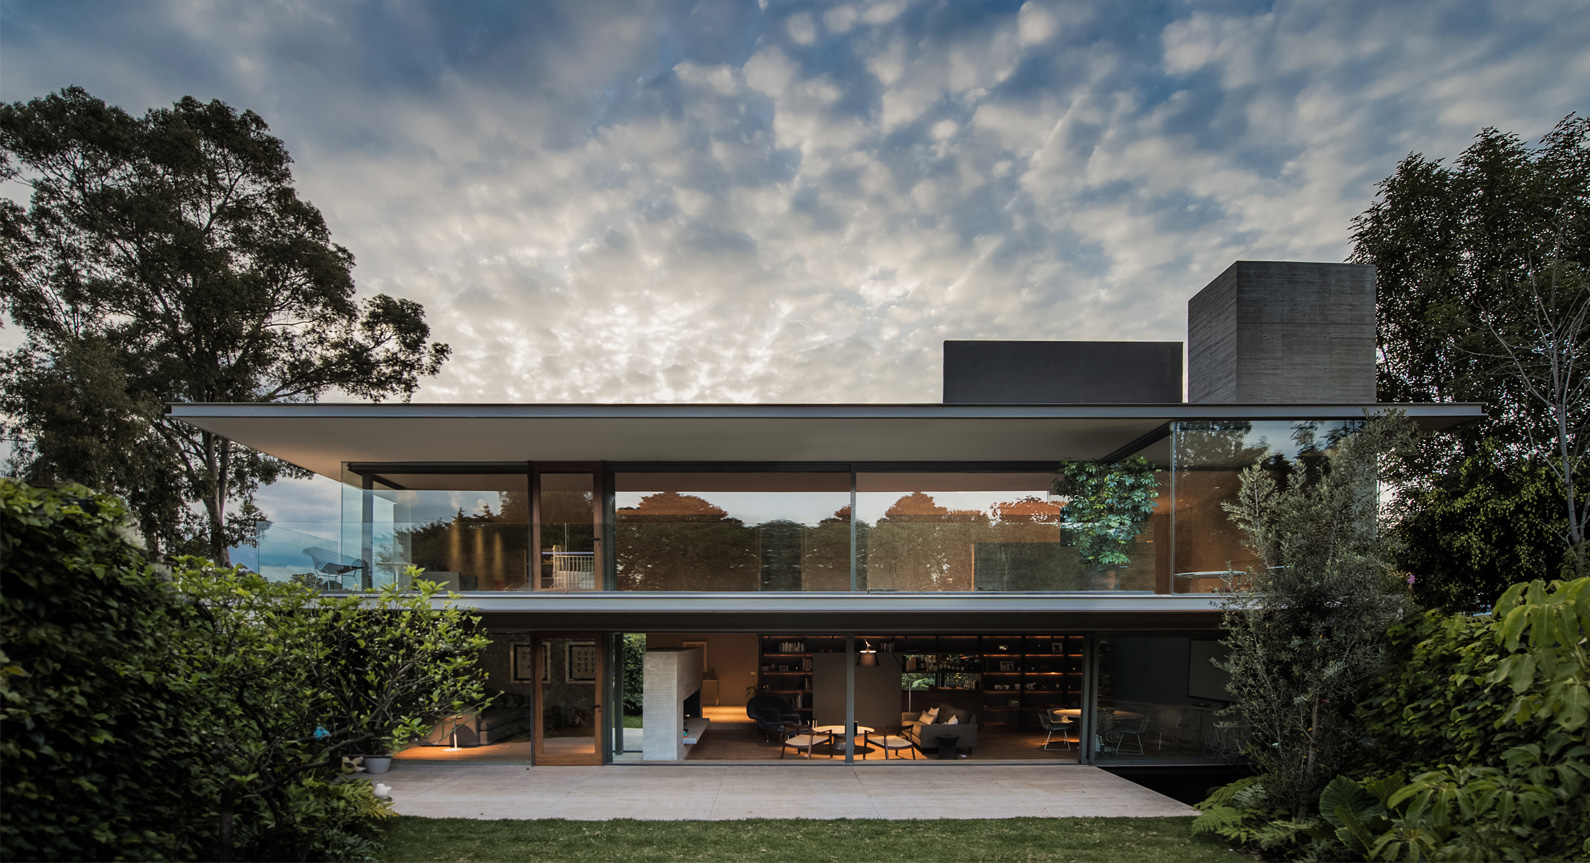 Casa Ramos By JJRR Architecture Takes Inspiration From The Case Study House Of The 1940s